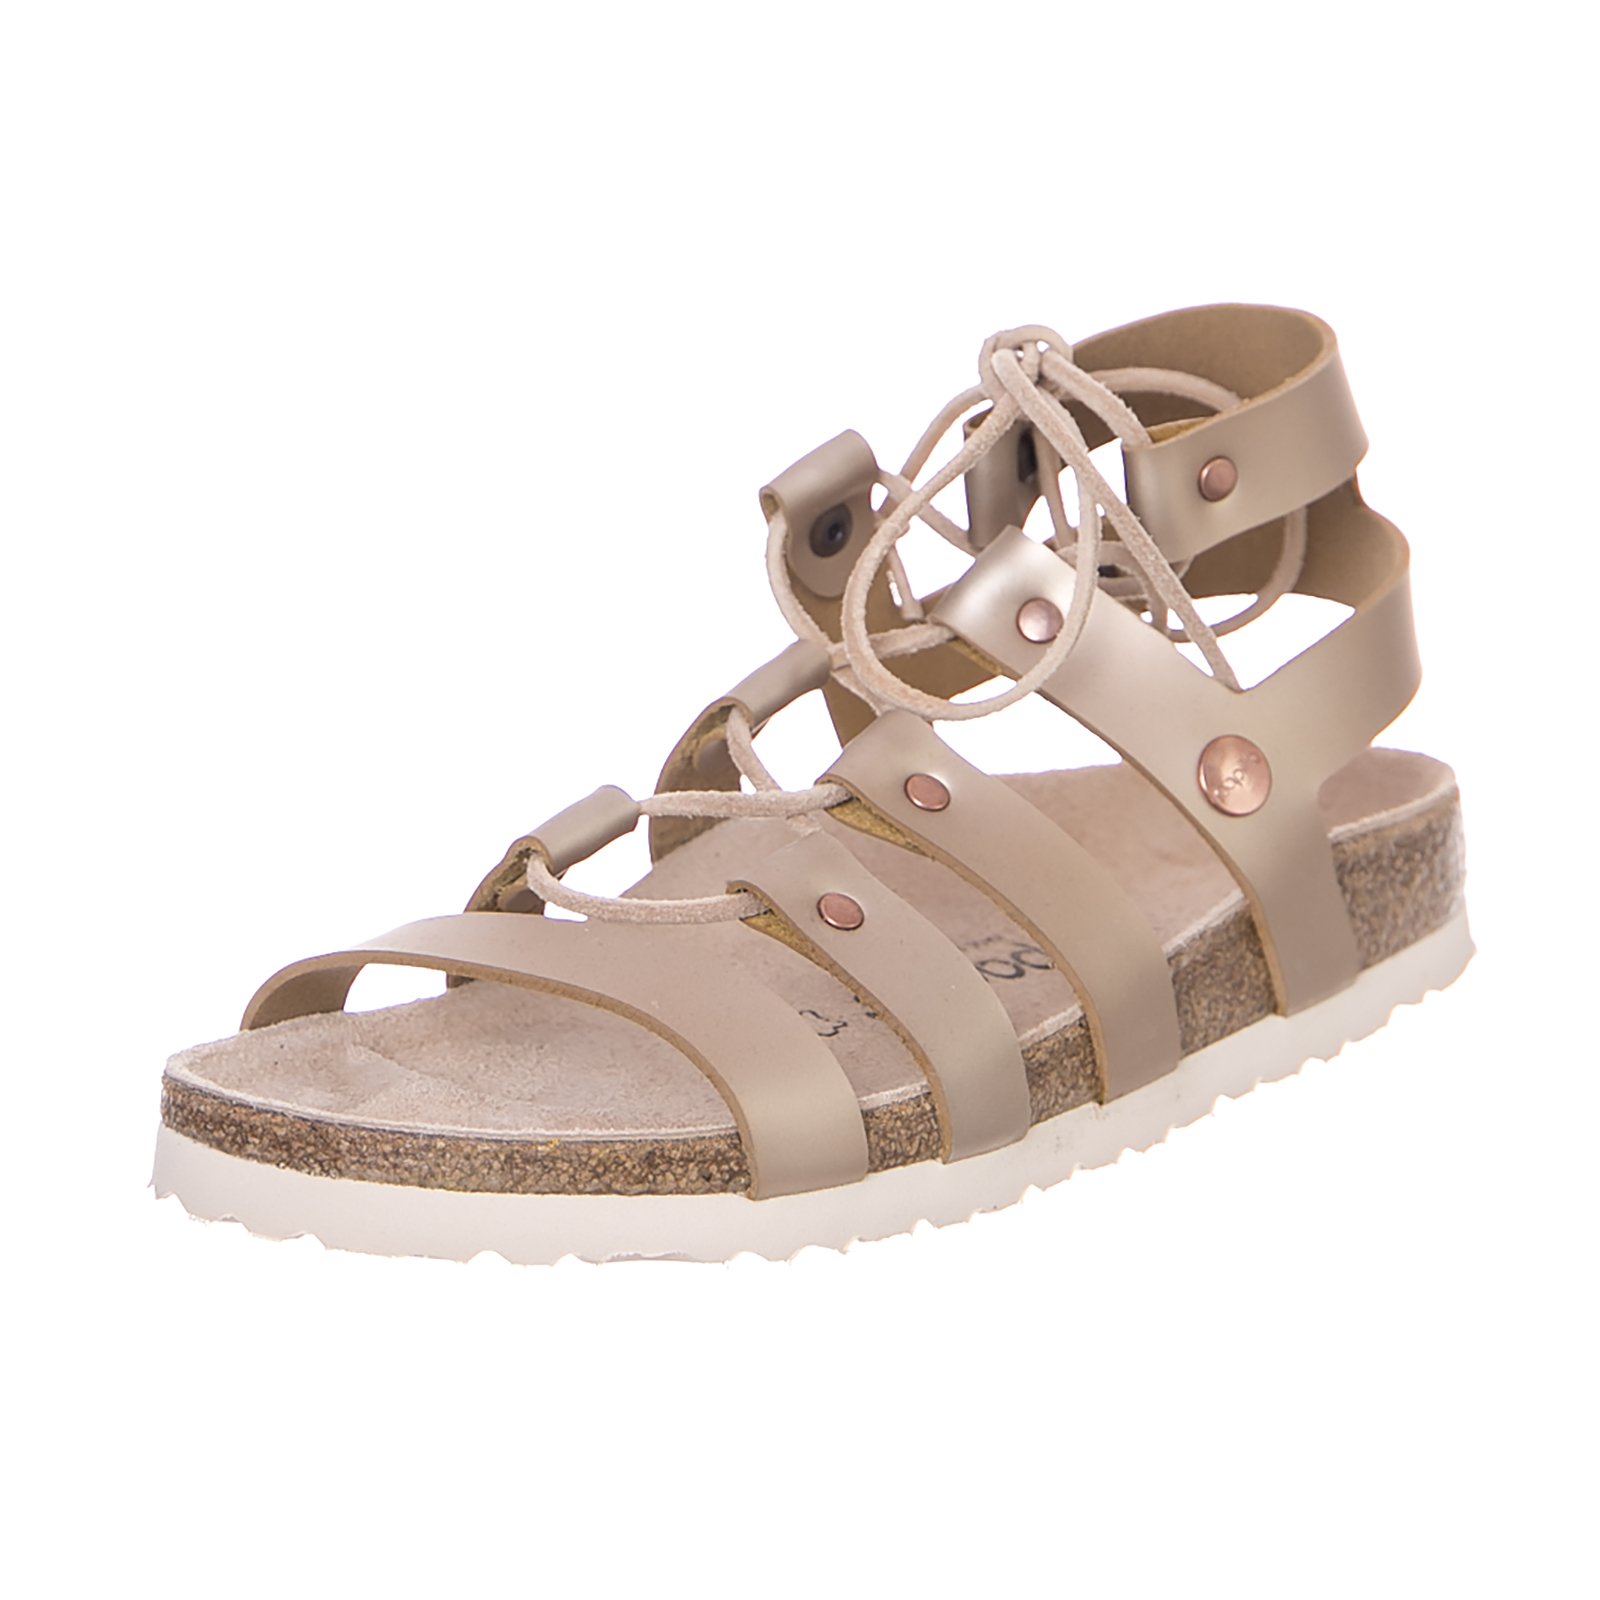 Birkenstock Sandalias Cleo Leather Rosas Frosted Metálico Rosas Leather Rosa c163c1